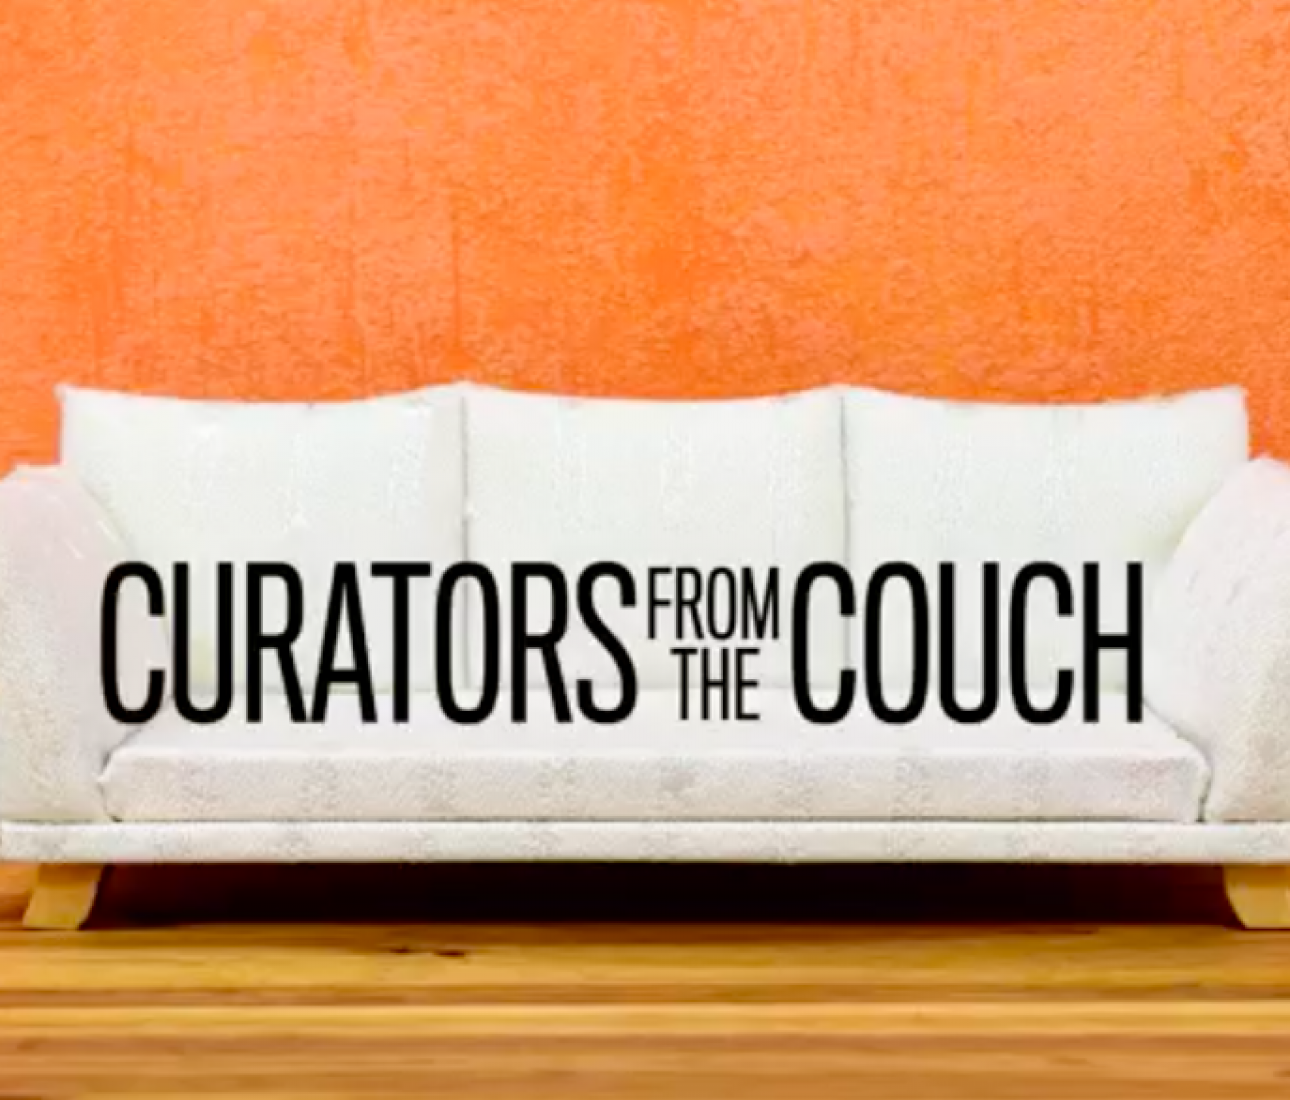 Curators from the Couch